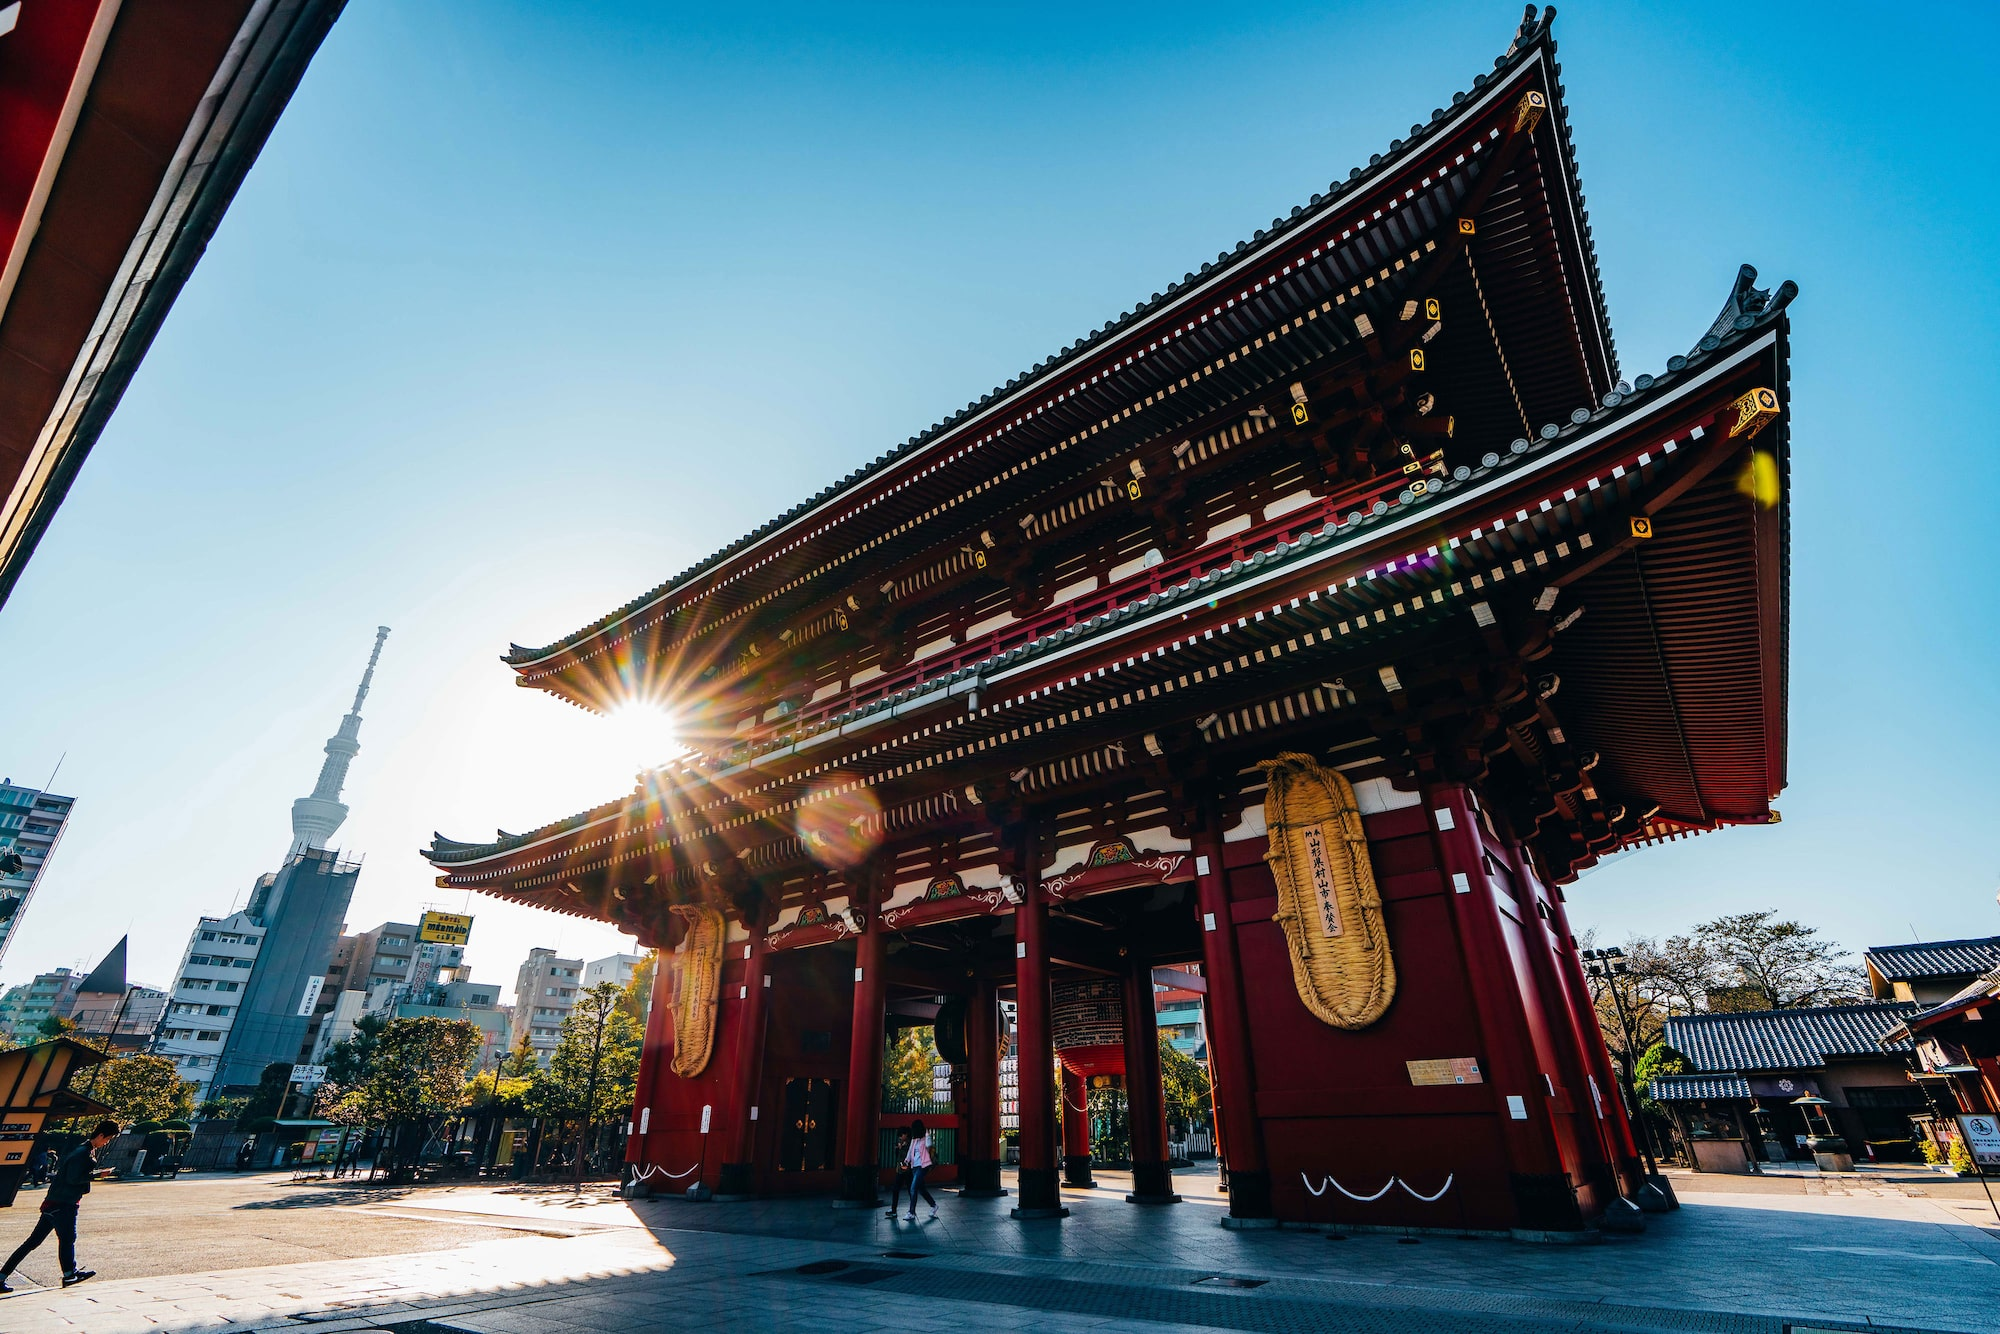 Japanese temple entrance with grand archway